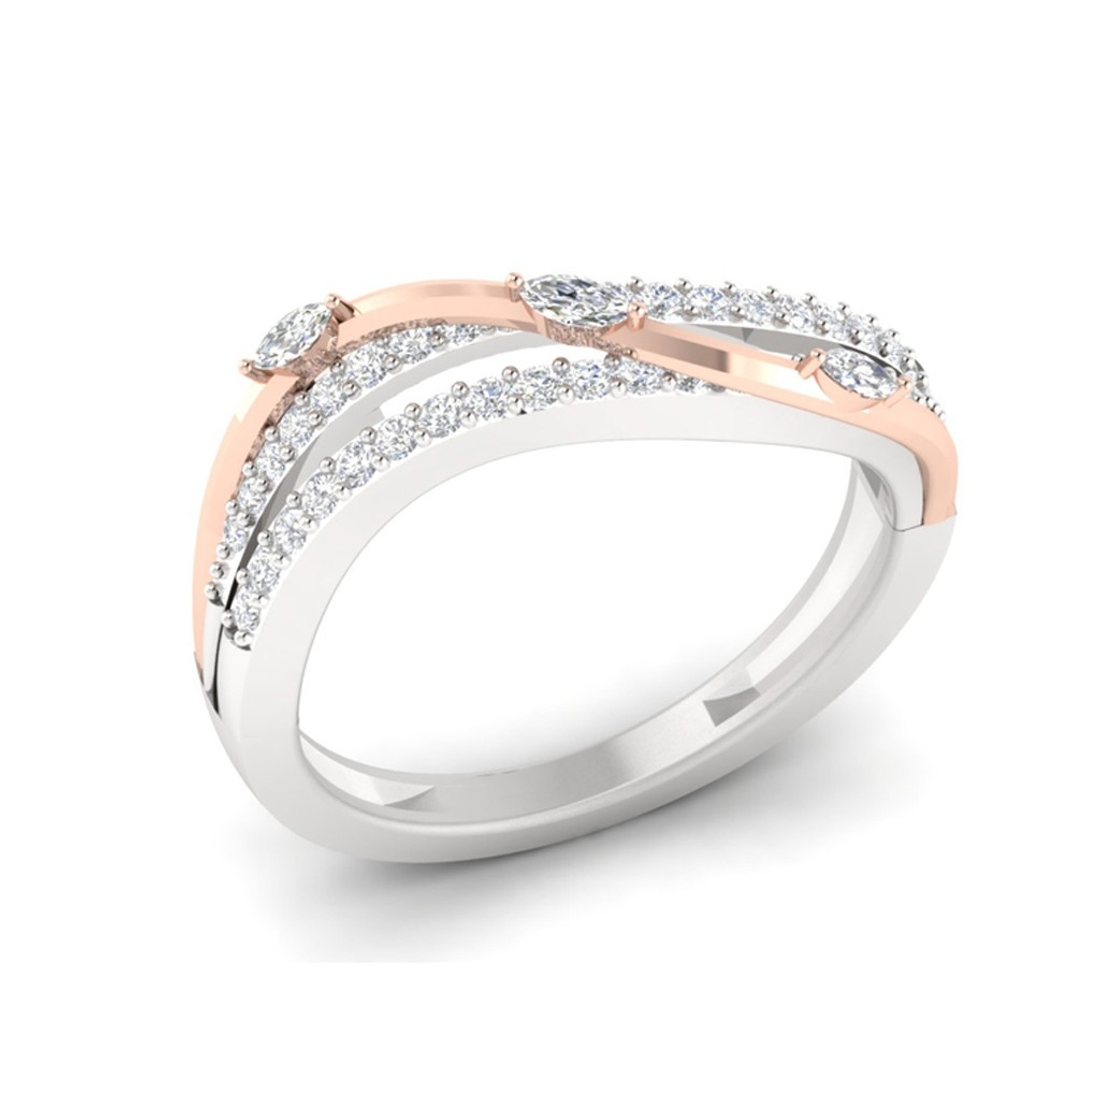 Sarvada Jewels' The Chanelle Love Ring